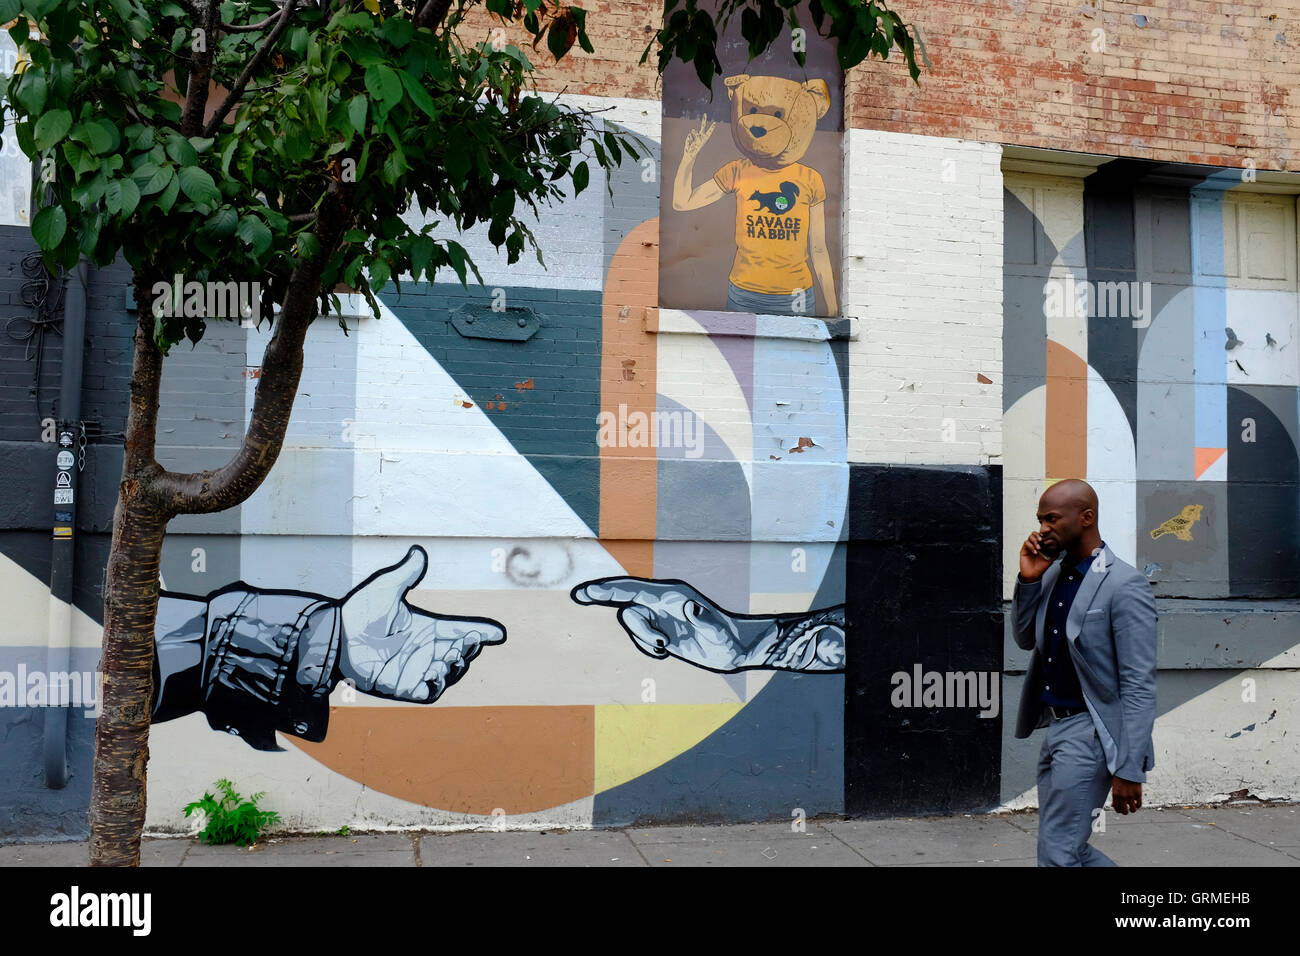 A man walking by a mural on the building facade along Christopher Columbus Drive in Historic Downtown,Jersey City,New - Stock Image